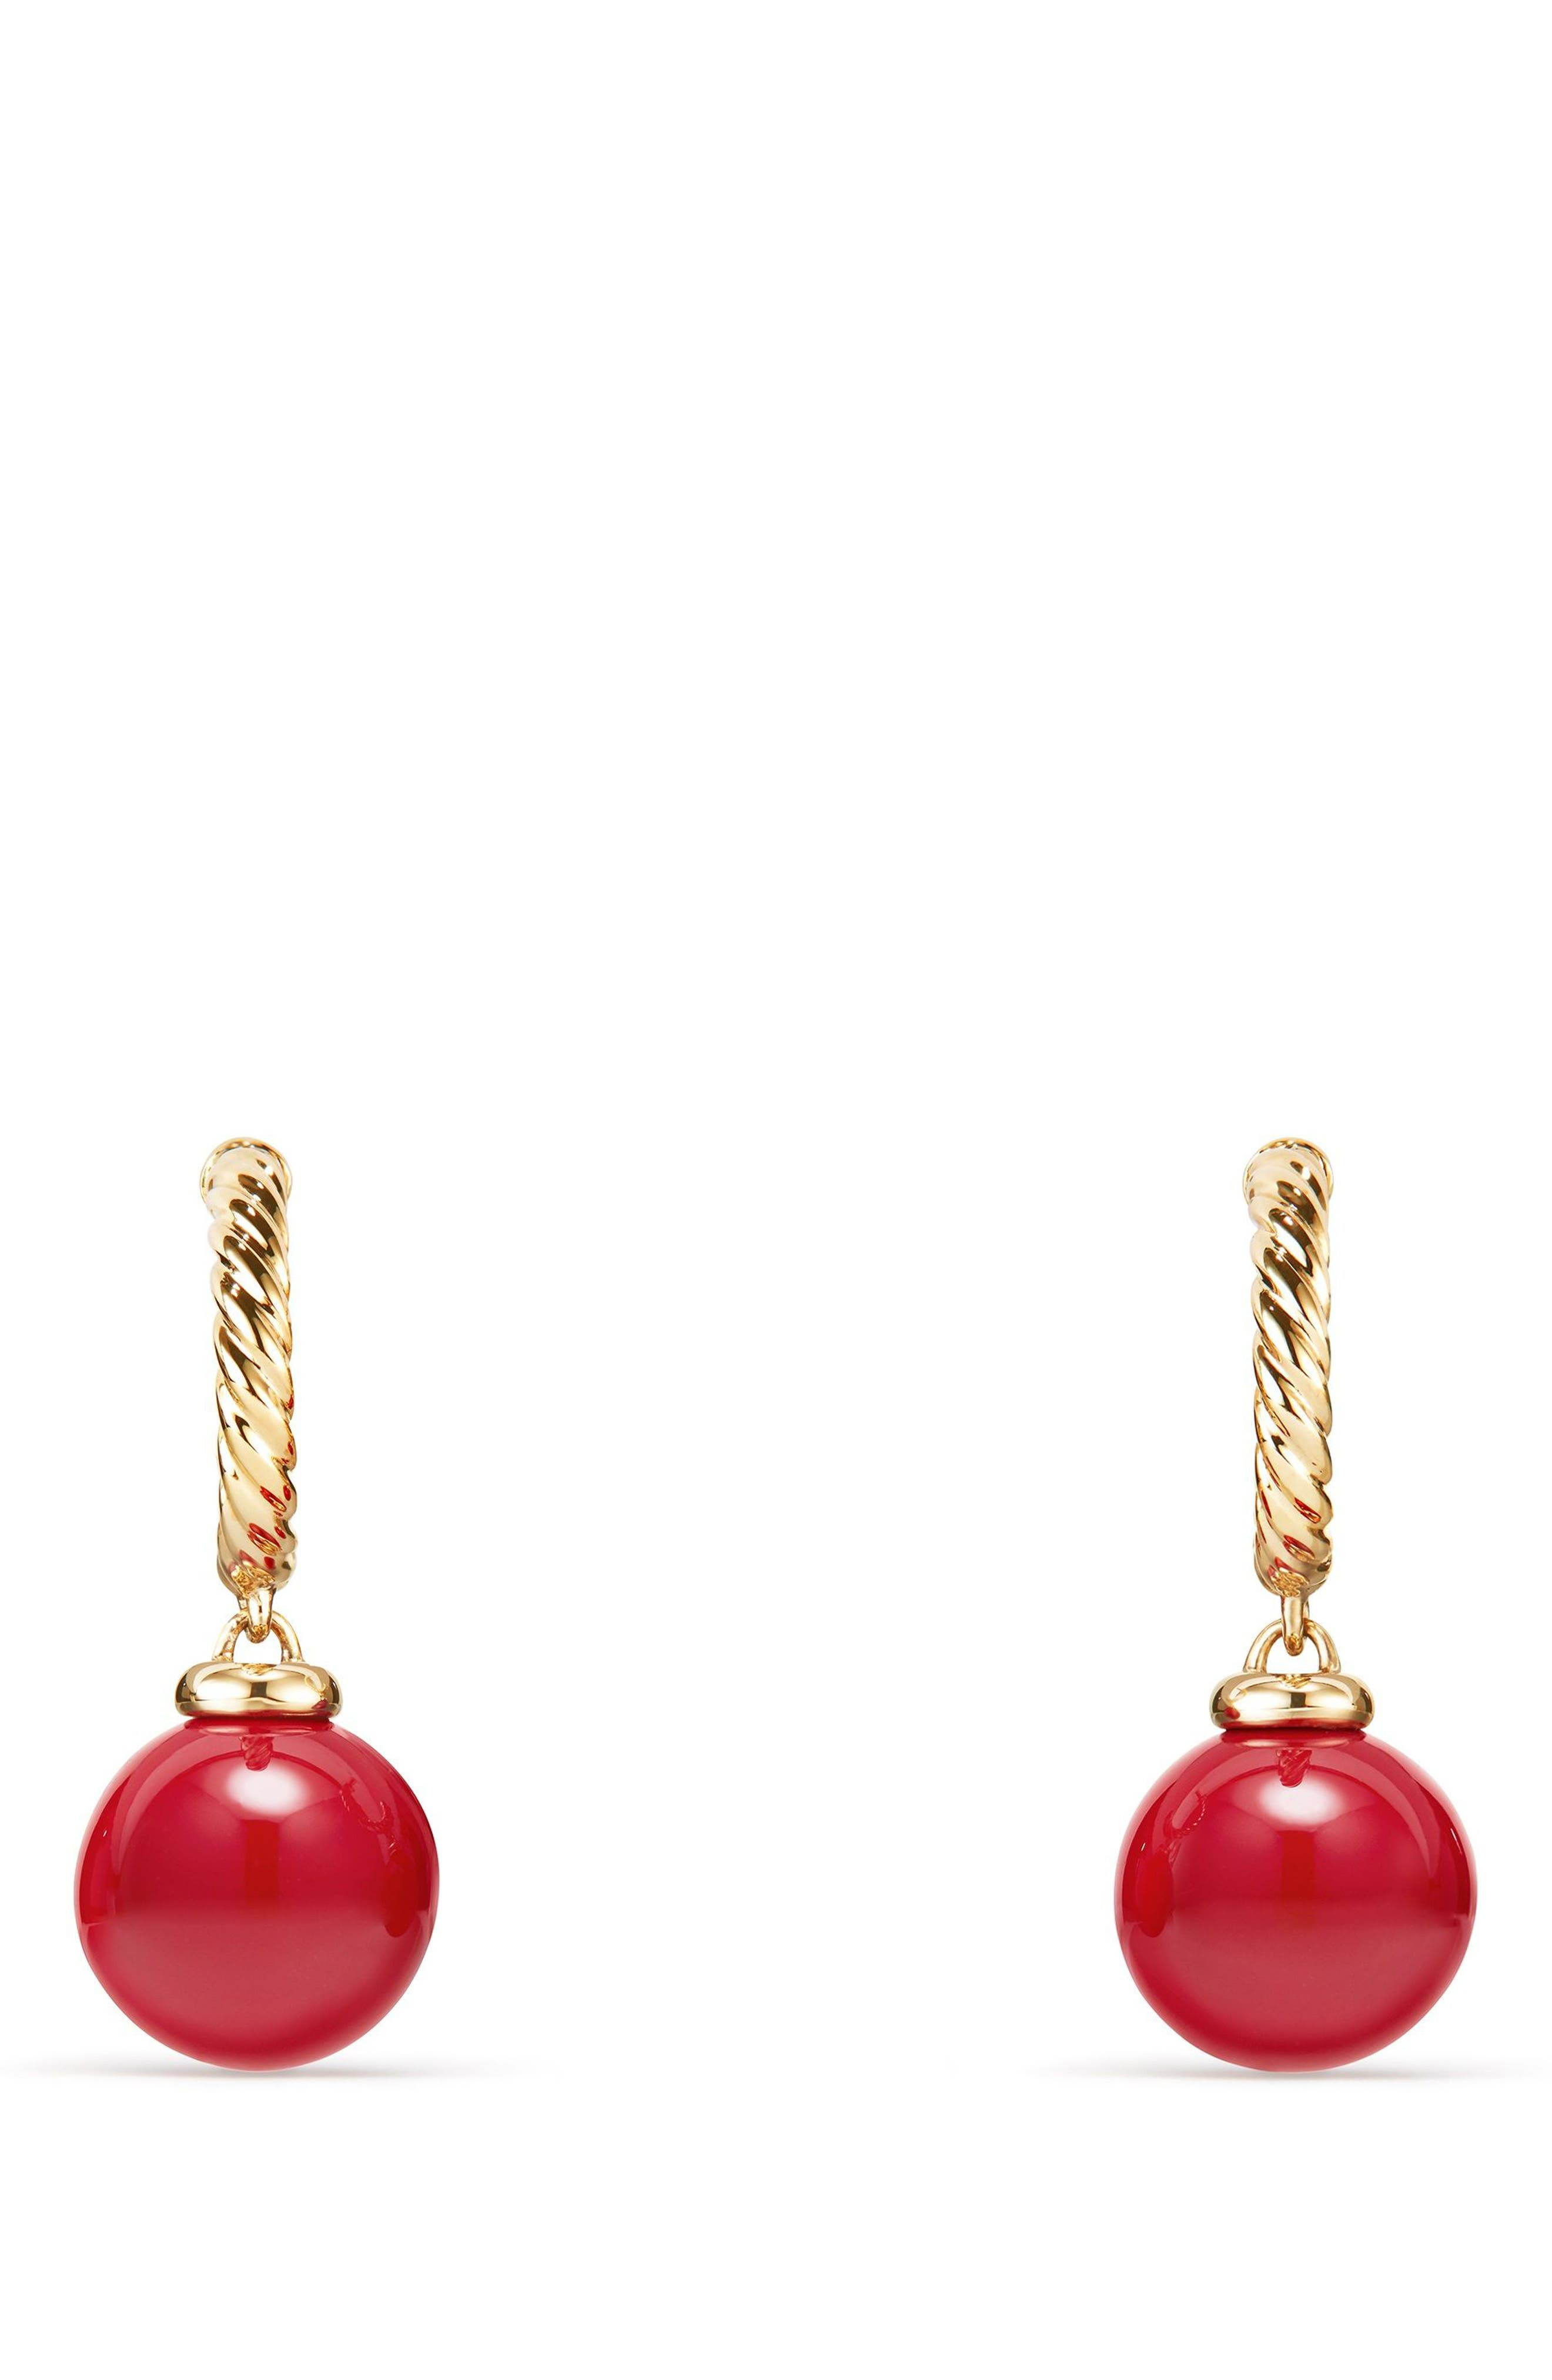 Solari Hoop Earrings with 18K Gold and Red Enamel,                             Alternate thumbnail 2, color,                             Yellow Gold/ Red